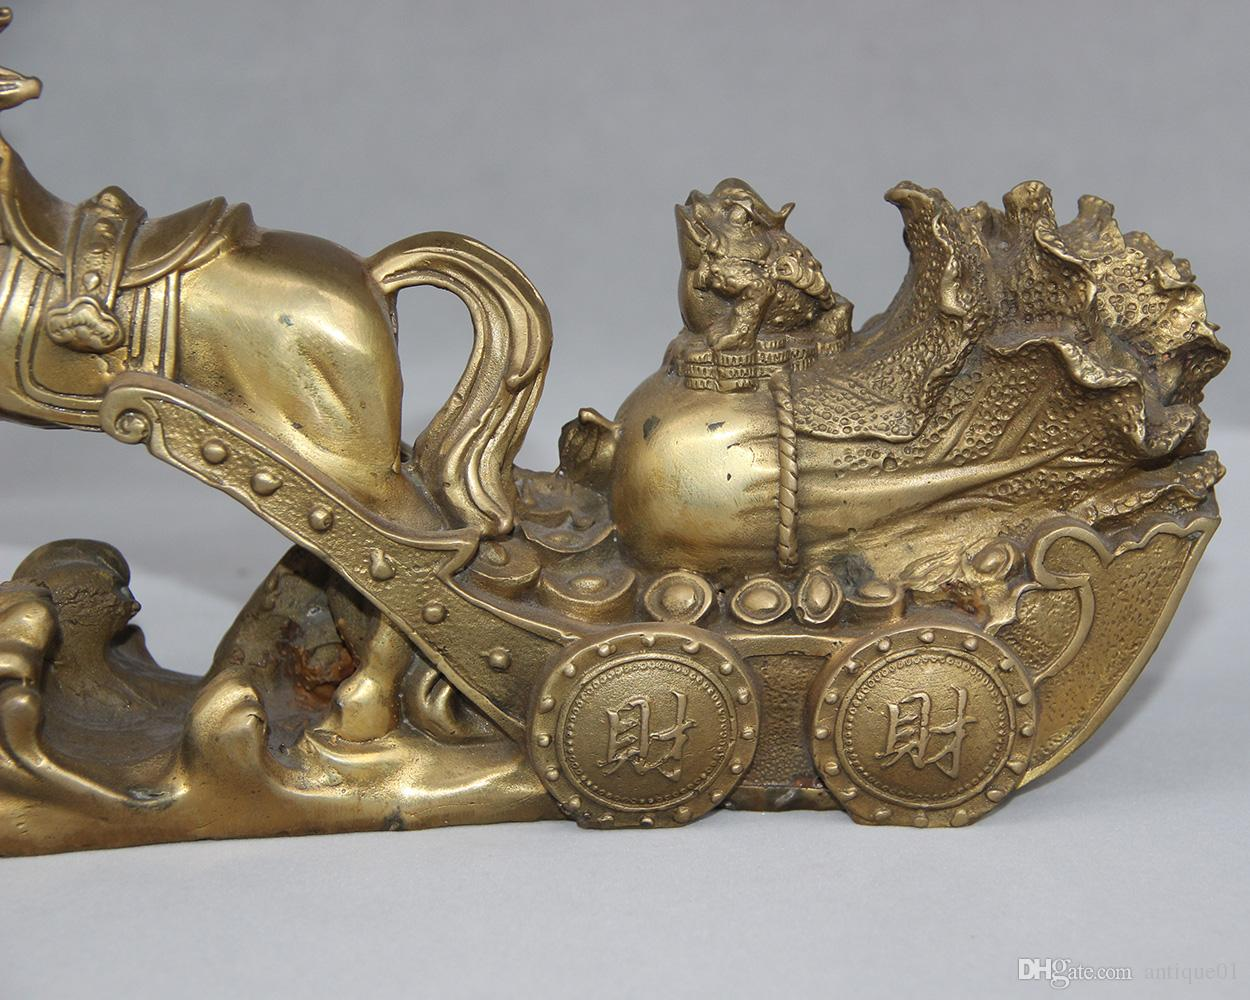 China Brass Horse Drawn Wealth Car Money Cabbage Golden Toad Spittor Cart Statue home decoration